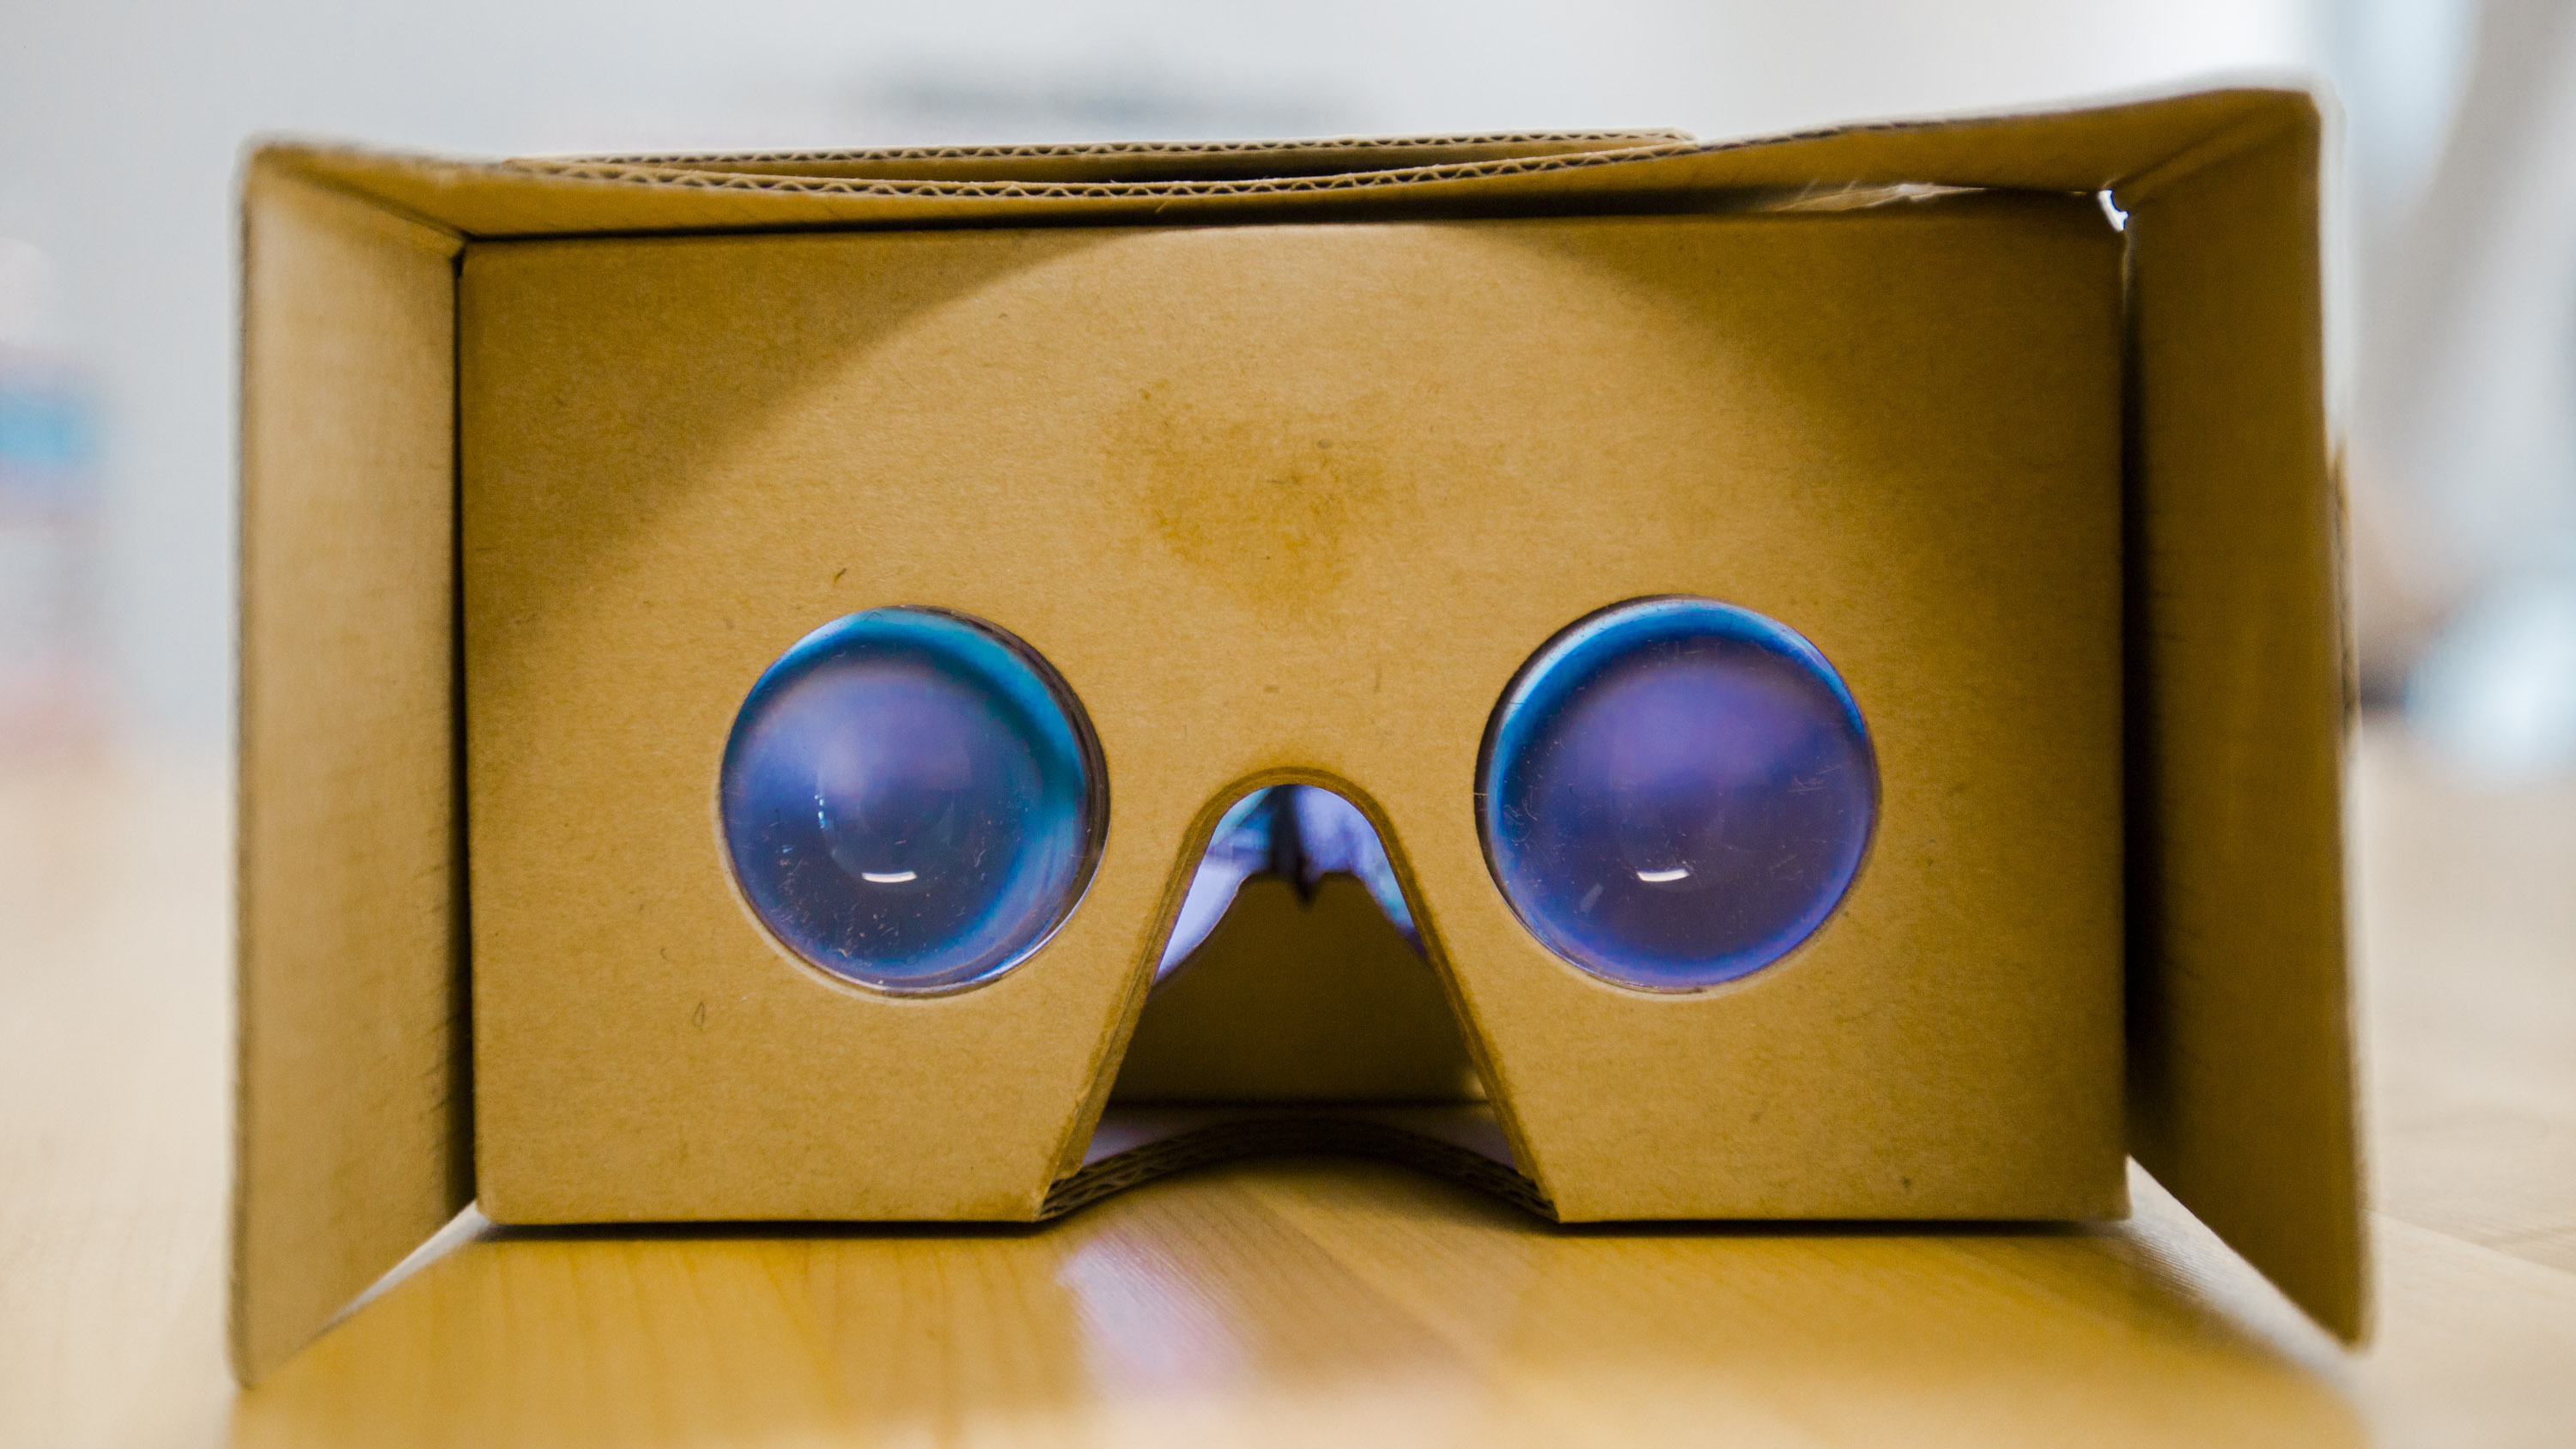 YouTube bolts into next phase of virtual reality with 3D video